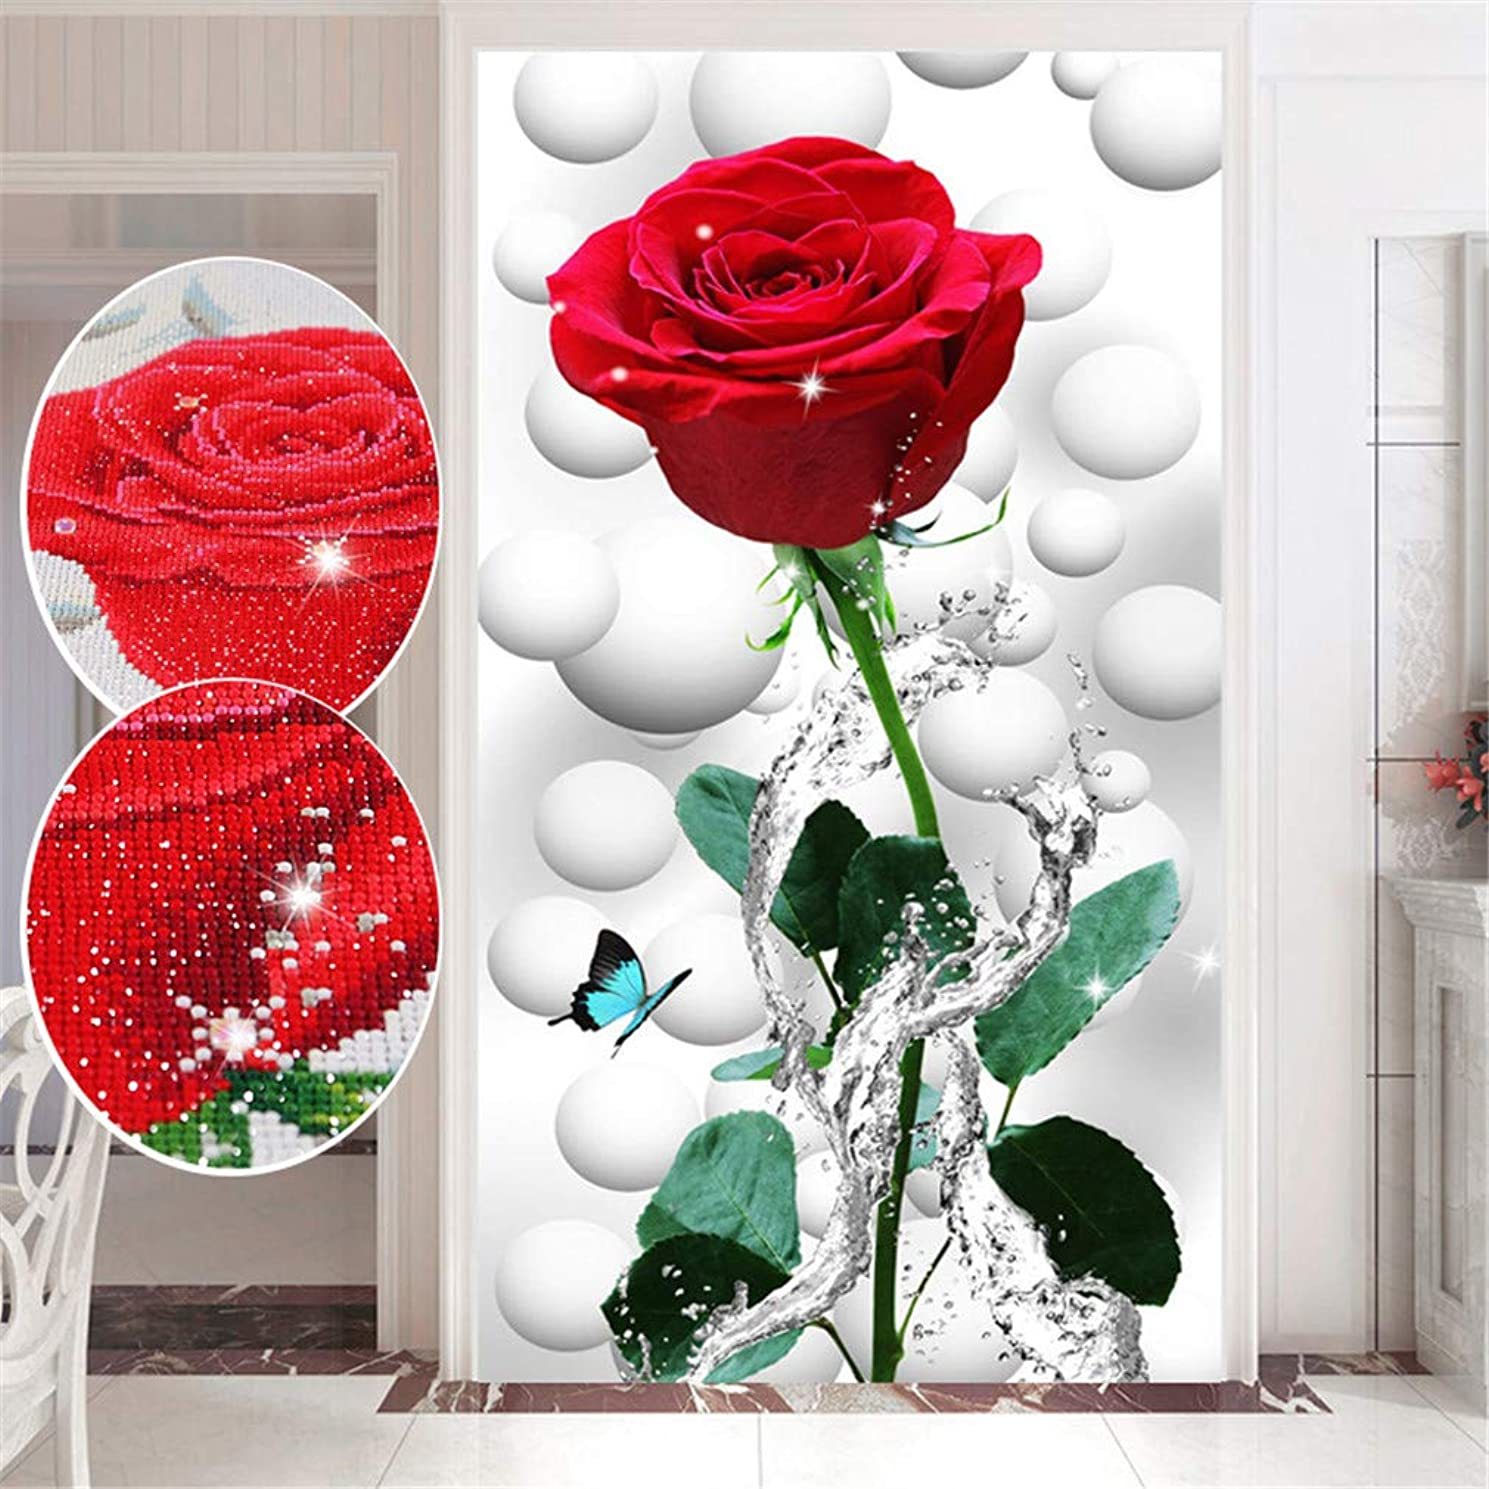 DIY 5D Diamond Painting by Number Kits, Full Drill Pictures Arts for Home Wall Decoration (B, 40x80cm)